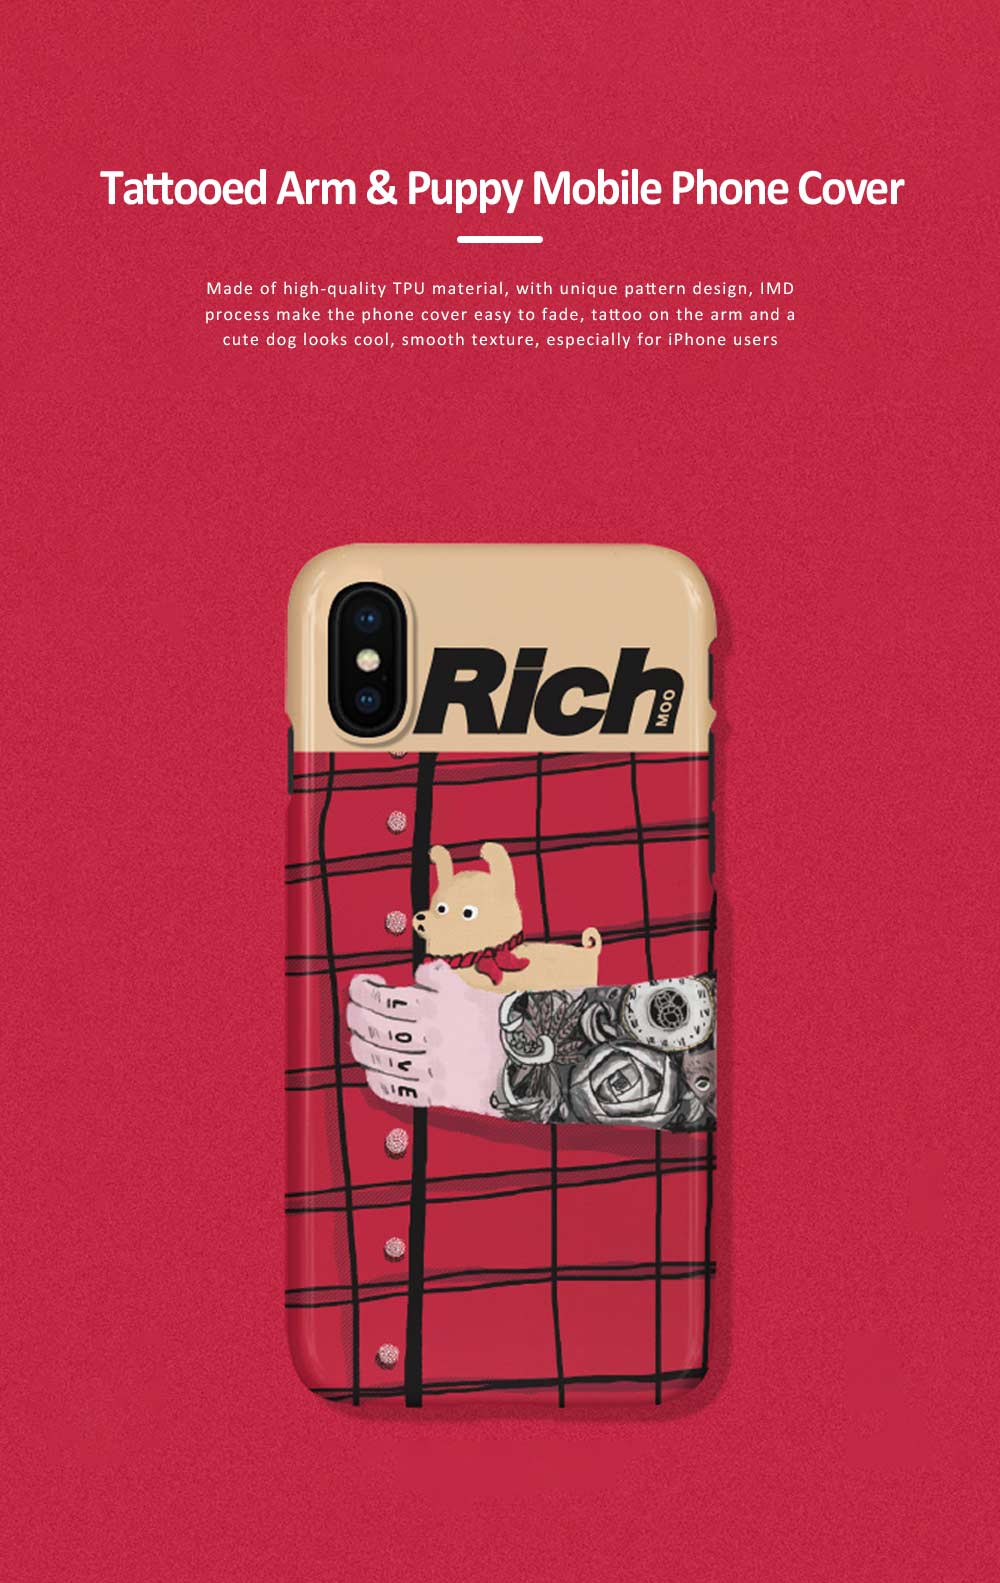 Tattooed Arm and Puppy Mobile Phone Cover for iPhone, with High-quality TPU Material, Cute and Cool Mobile Phone Shell 0